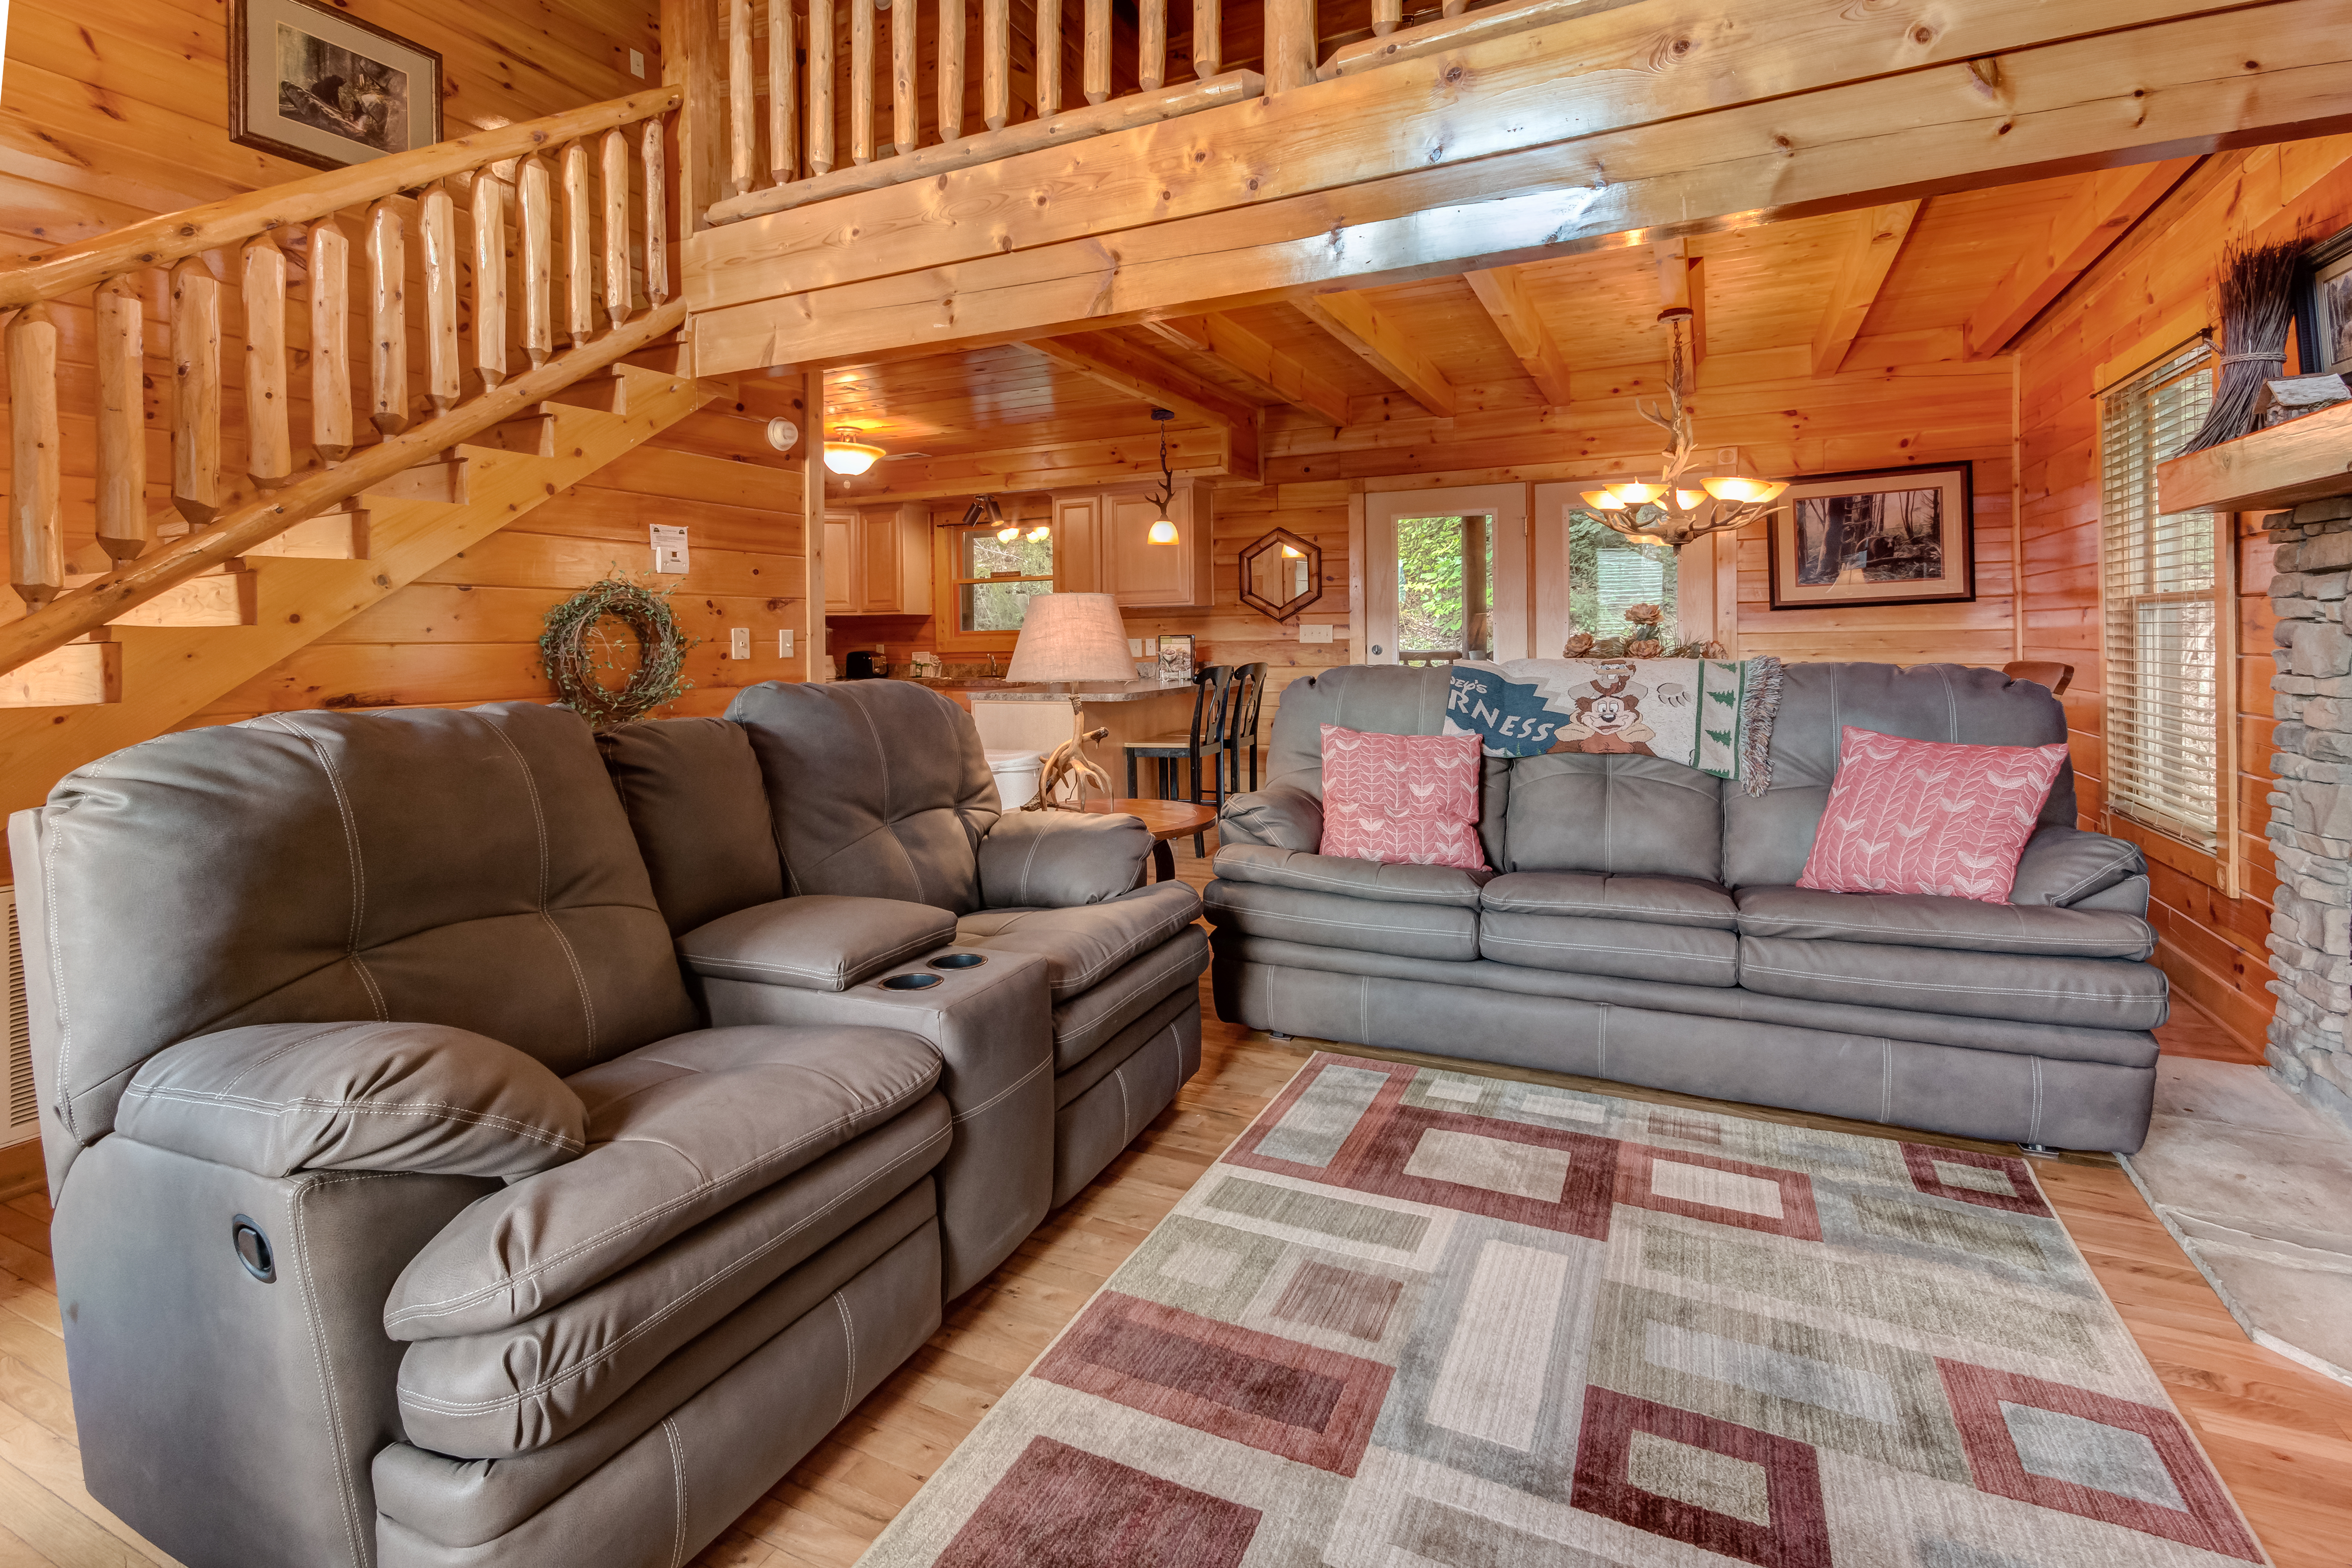 luxury cabins in gret dollywood escpe interior near forge at pigeon for area pet friendly tn gatlinburg sale